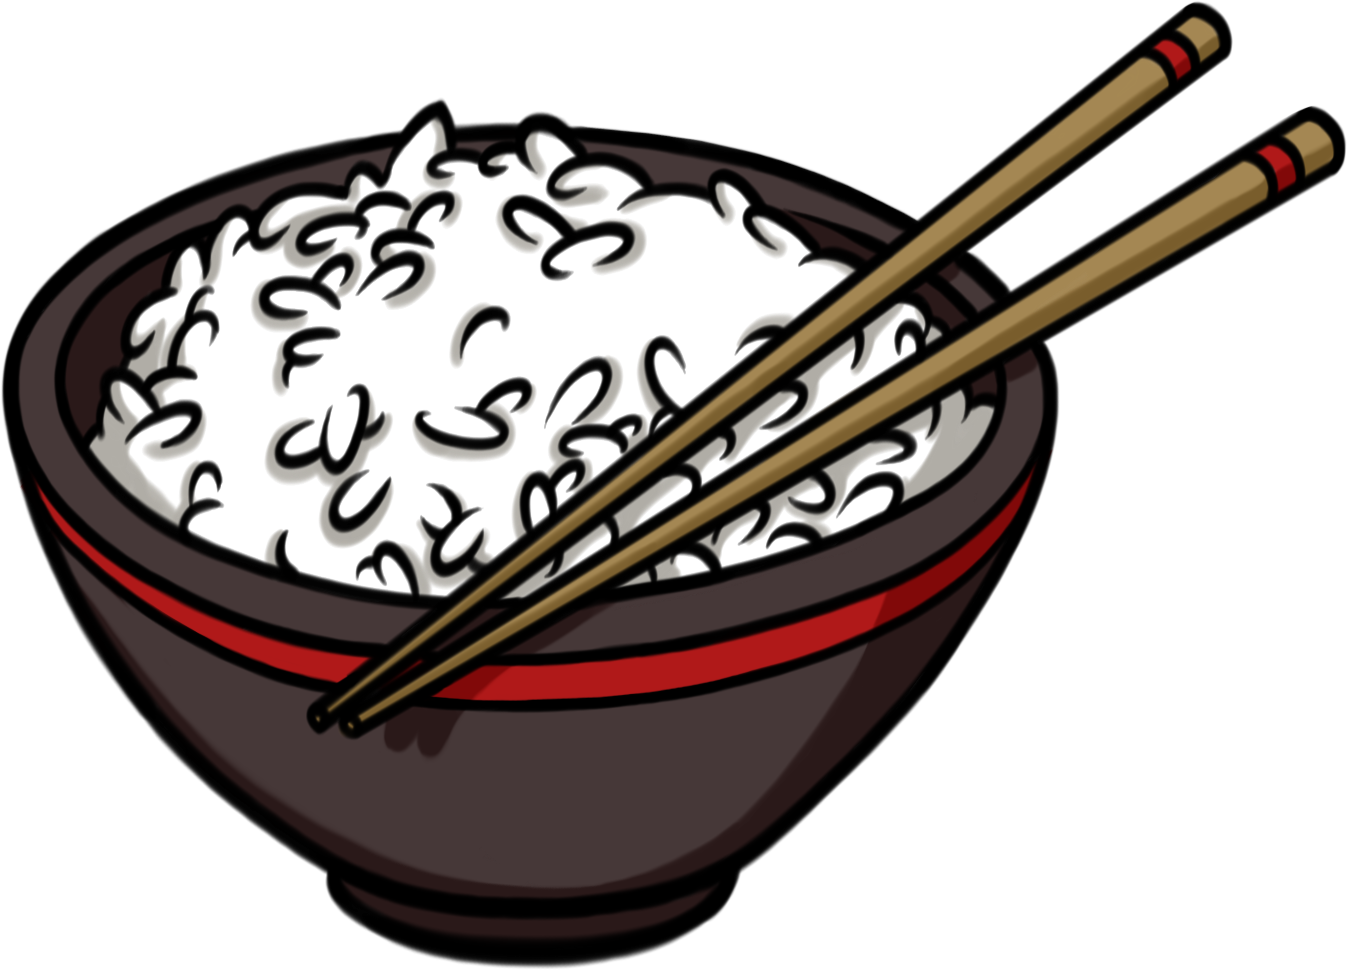 HD Rice Clipart Photos » Free Vector Art, Images, Graphics & Clipart.